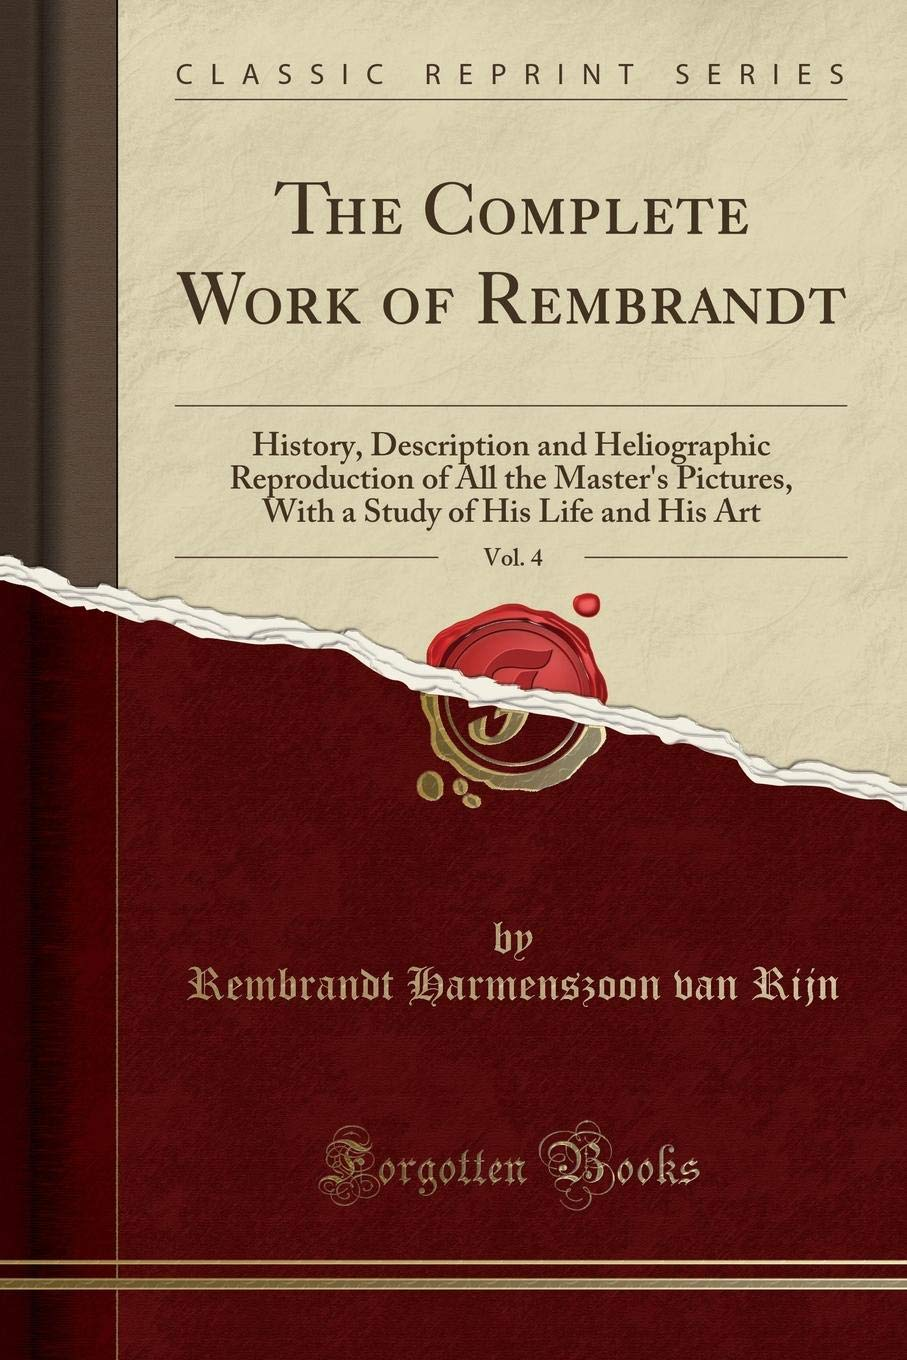 Download The Complete Work of Rembrandt, Vol. 4: History, Description and Heliographic Reproduction of All the Master's Pictures, With a Study of His Life and His Art (Classic Reprint) PDF